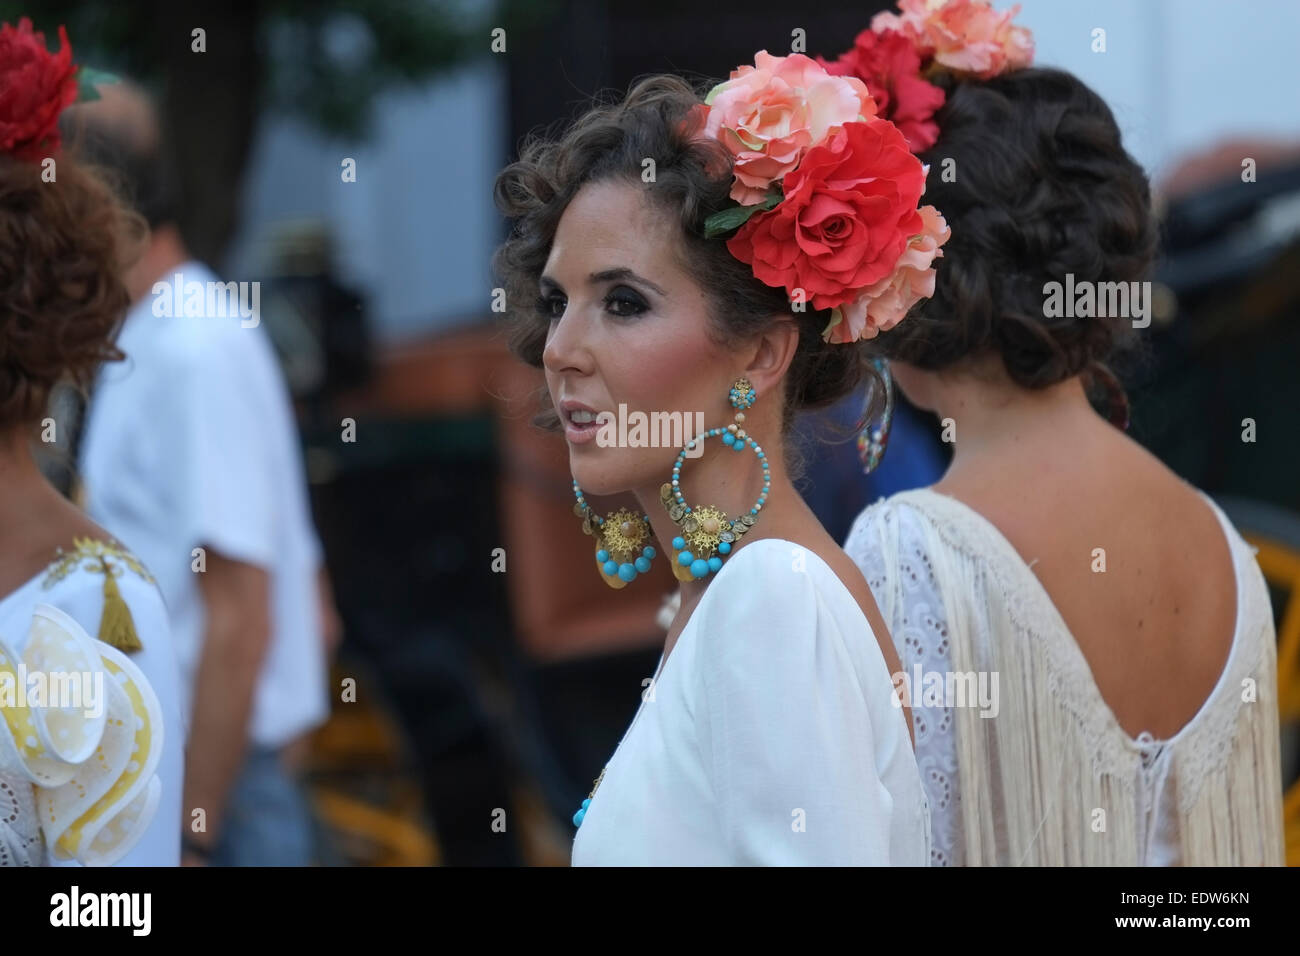 Spanish Hair High Resolution Stock Photography And Images Alamy